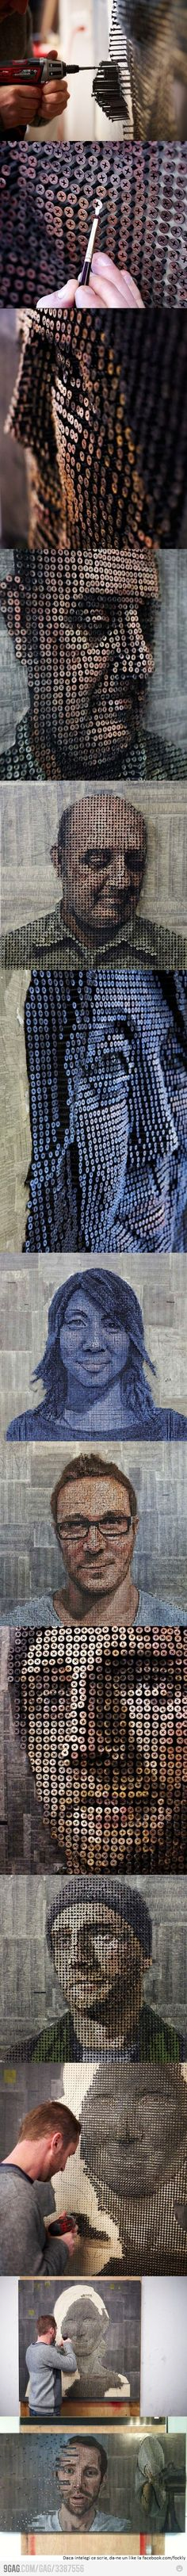 Amazing 3D portraits made out of screws by Andrew Myers